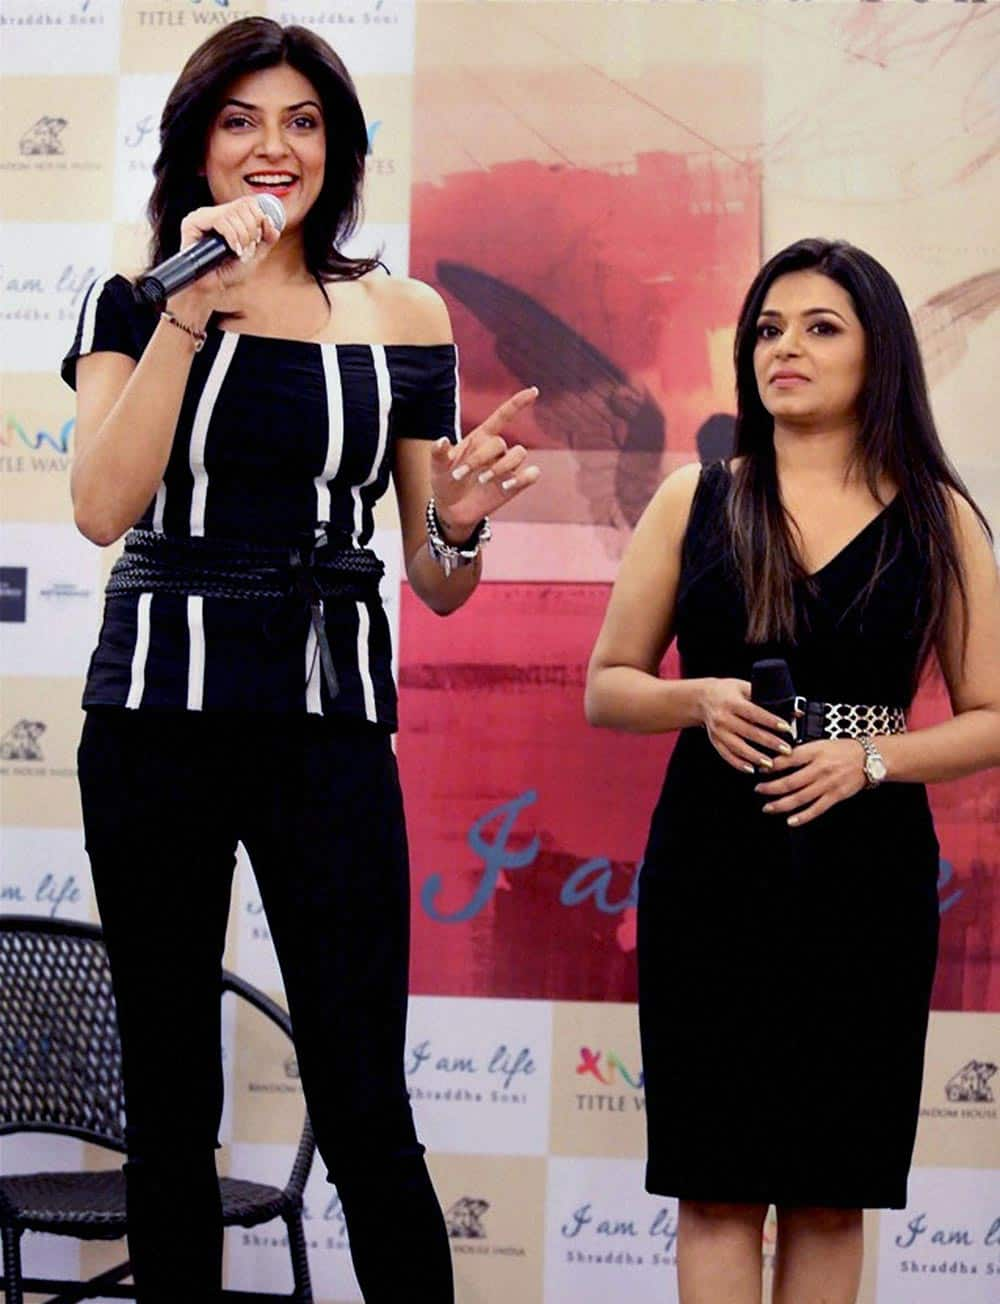 Bollywood Actress Sushmita Sen with Author Shraddha Soni, at the launch of her book 'I am Life' in Mumbai.